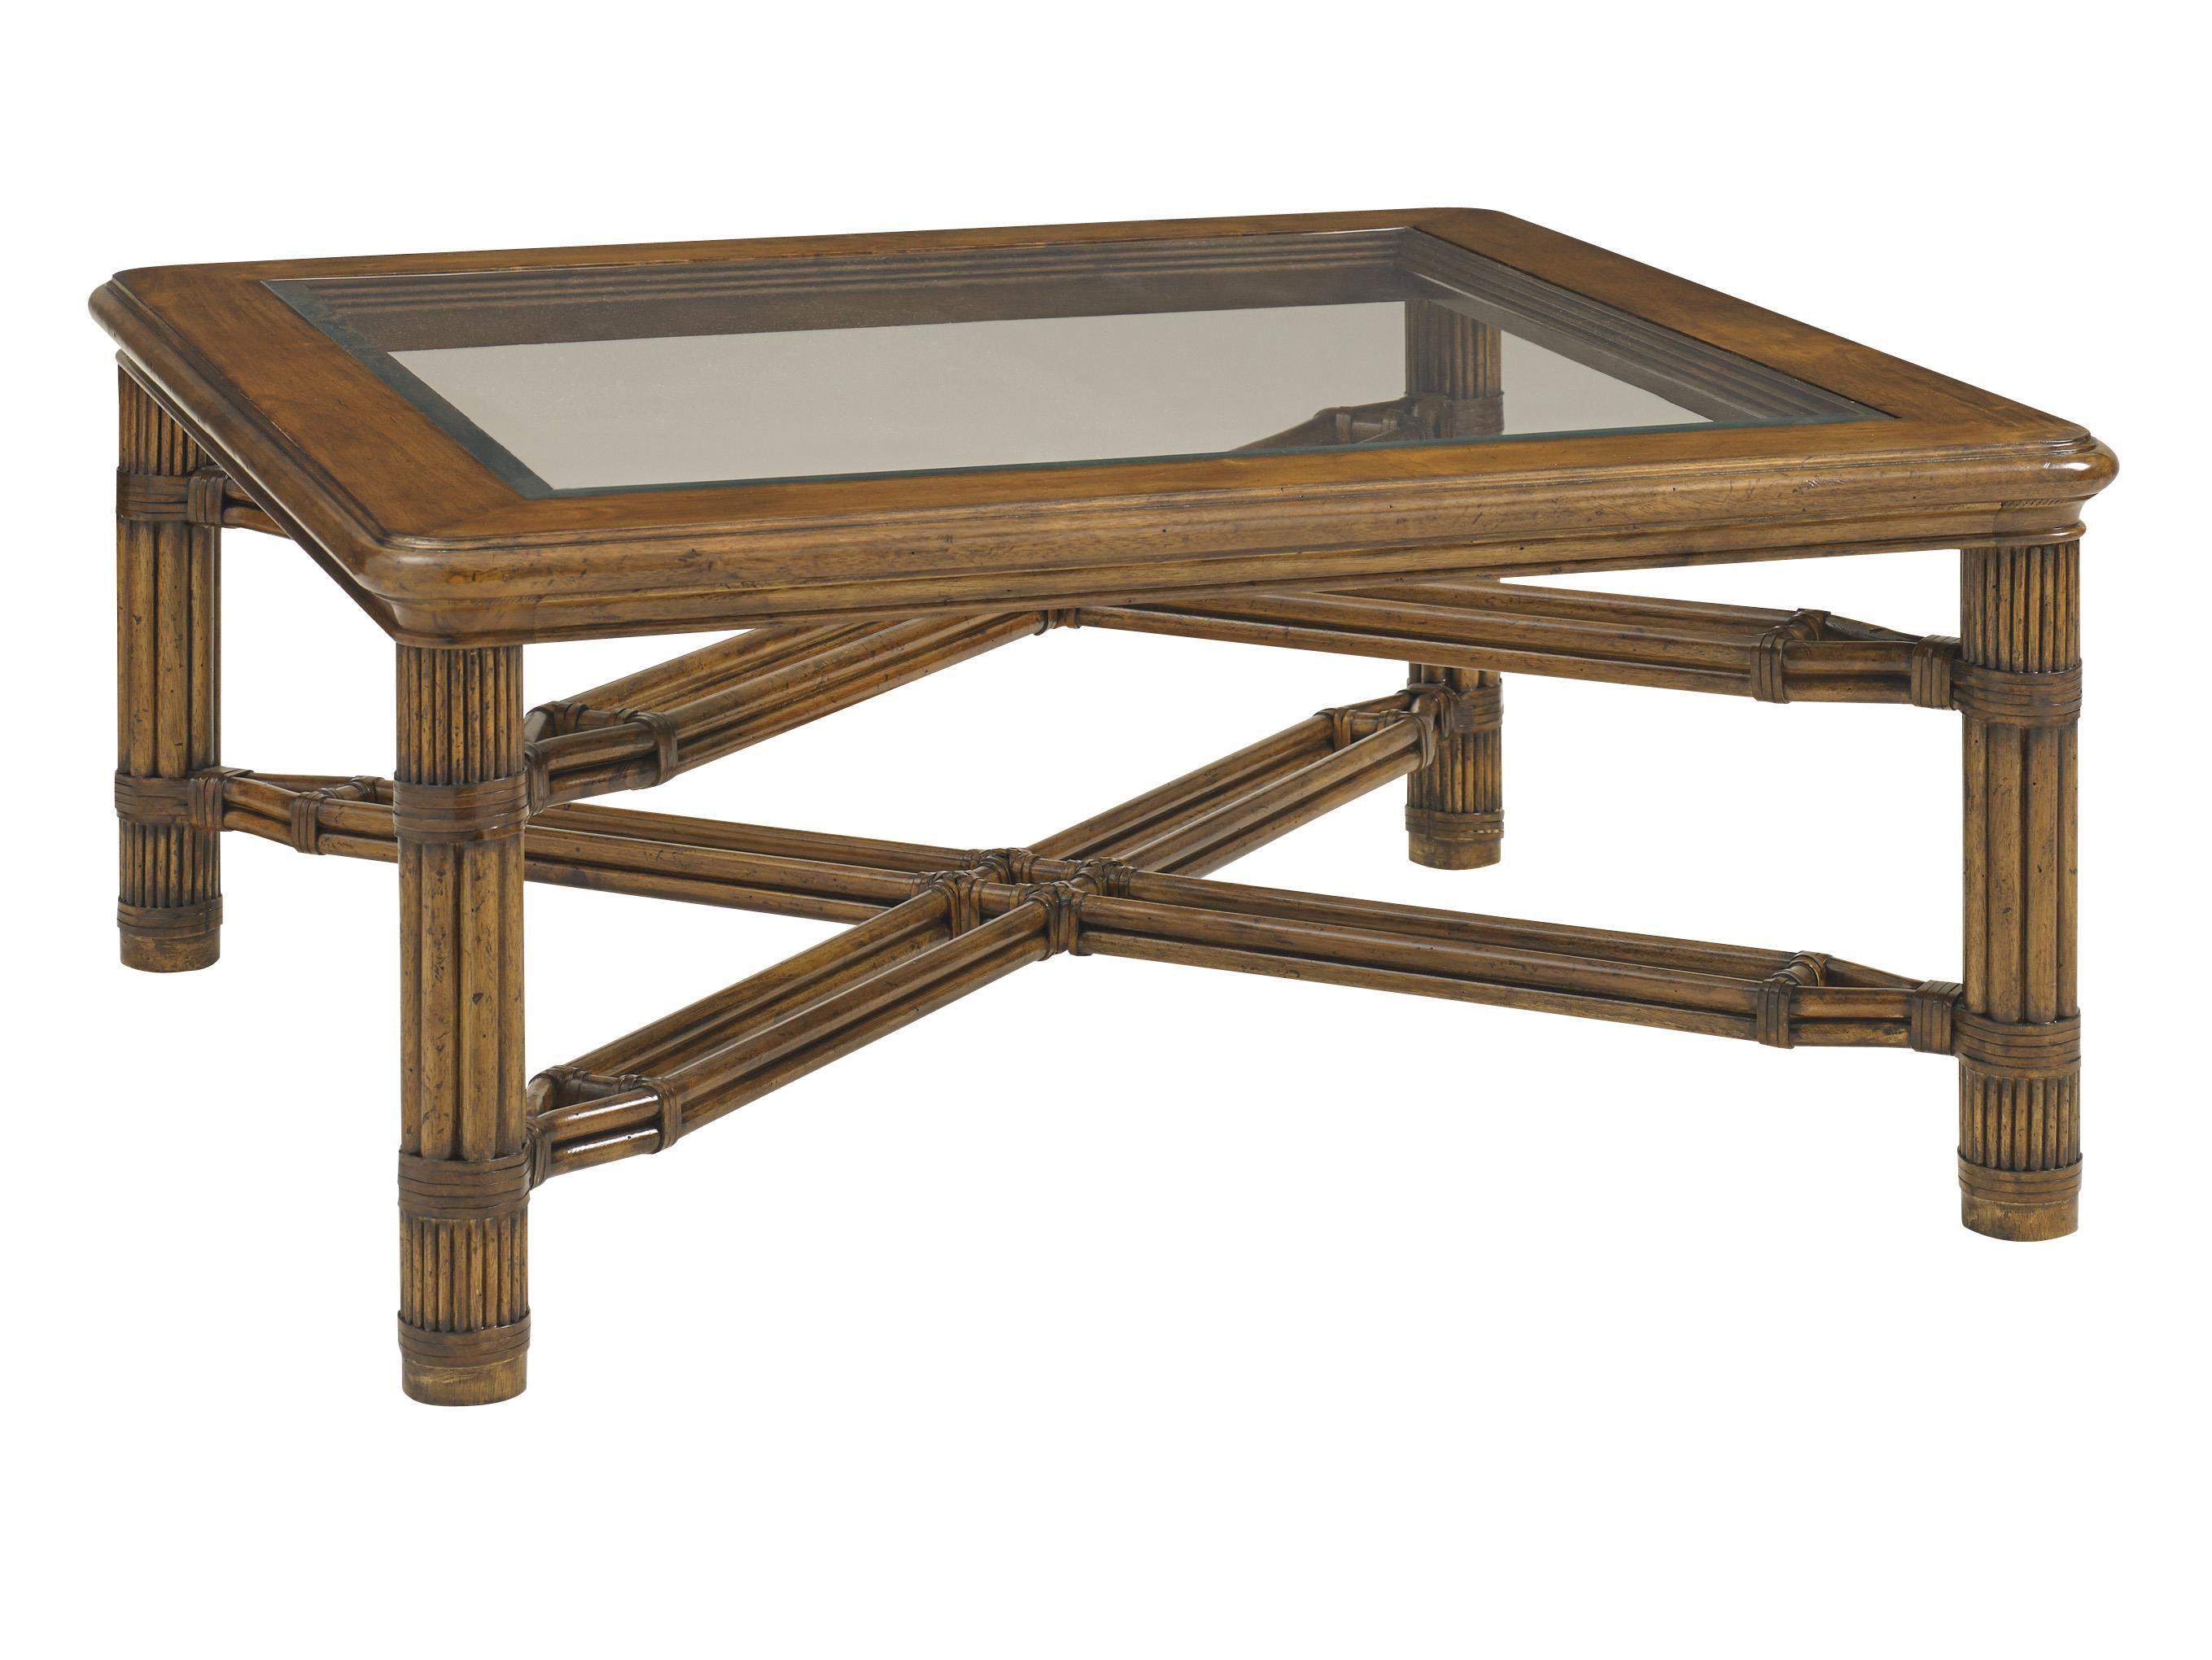 Bali Hai Capri Square Cocktail Table by Tommy Bahama Home at C. S. Wo & Sons Hawaii